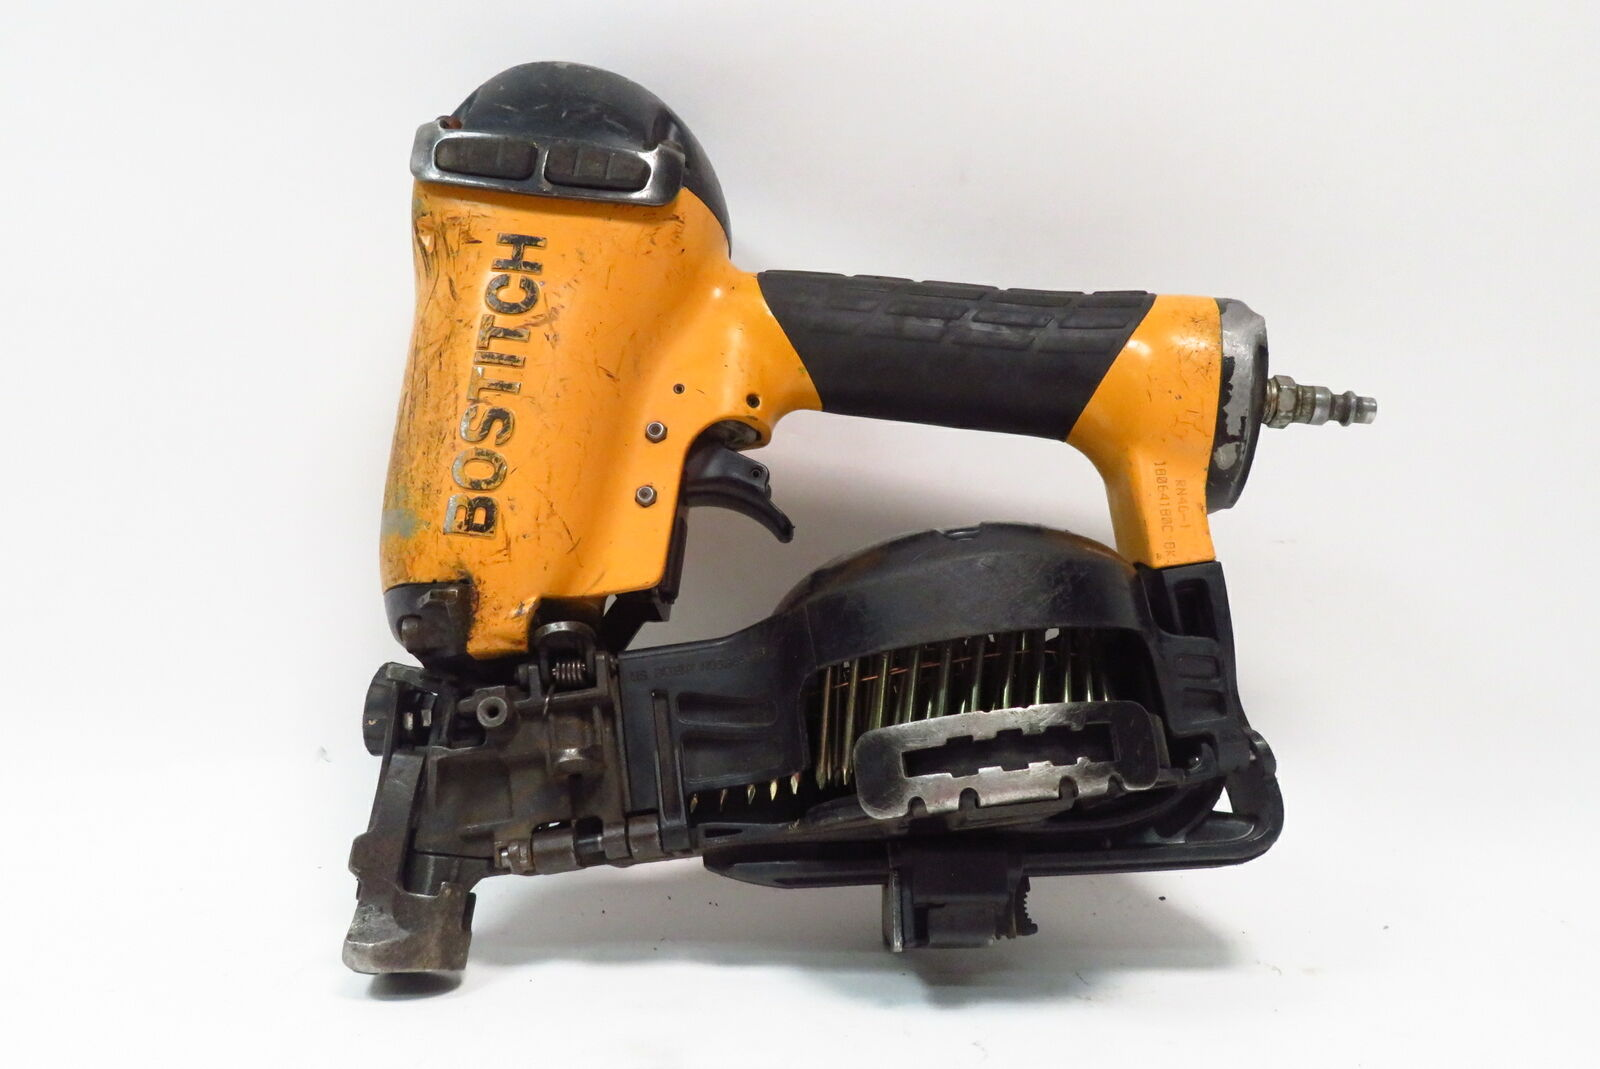 RN461 epawnamerica BOSTITCH Coil Roofing Nailer, 1-3/4-Inch to 1-3/4-Inch RN461